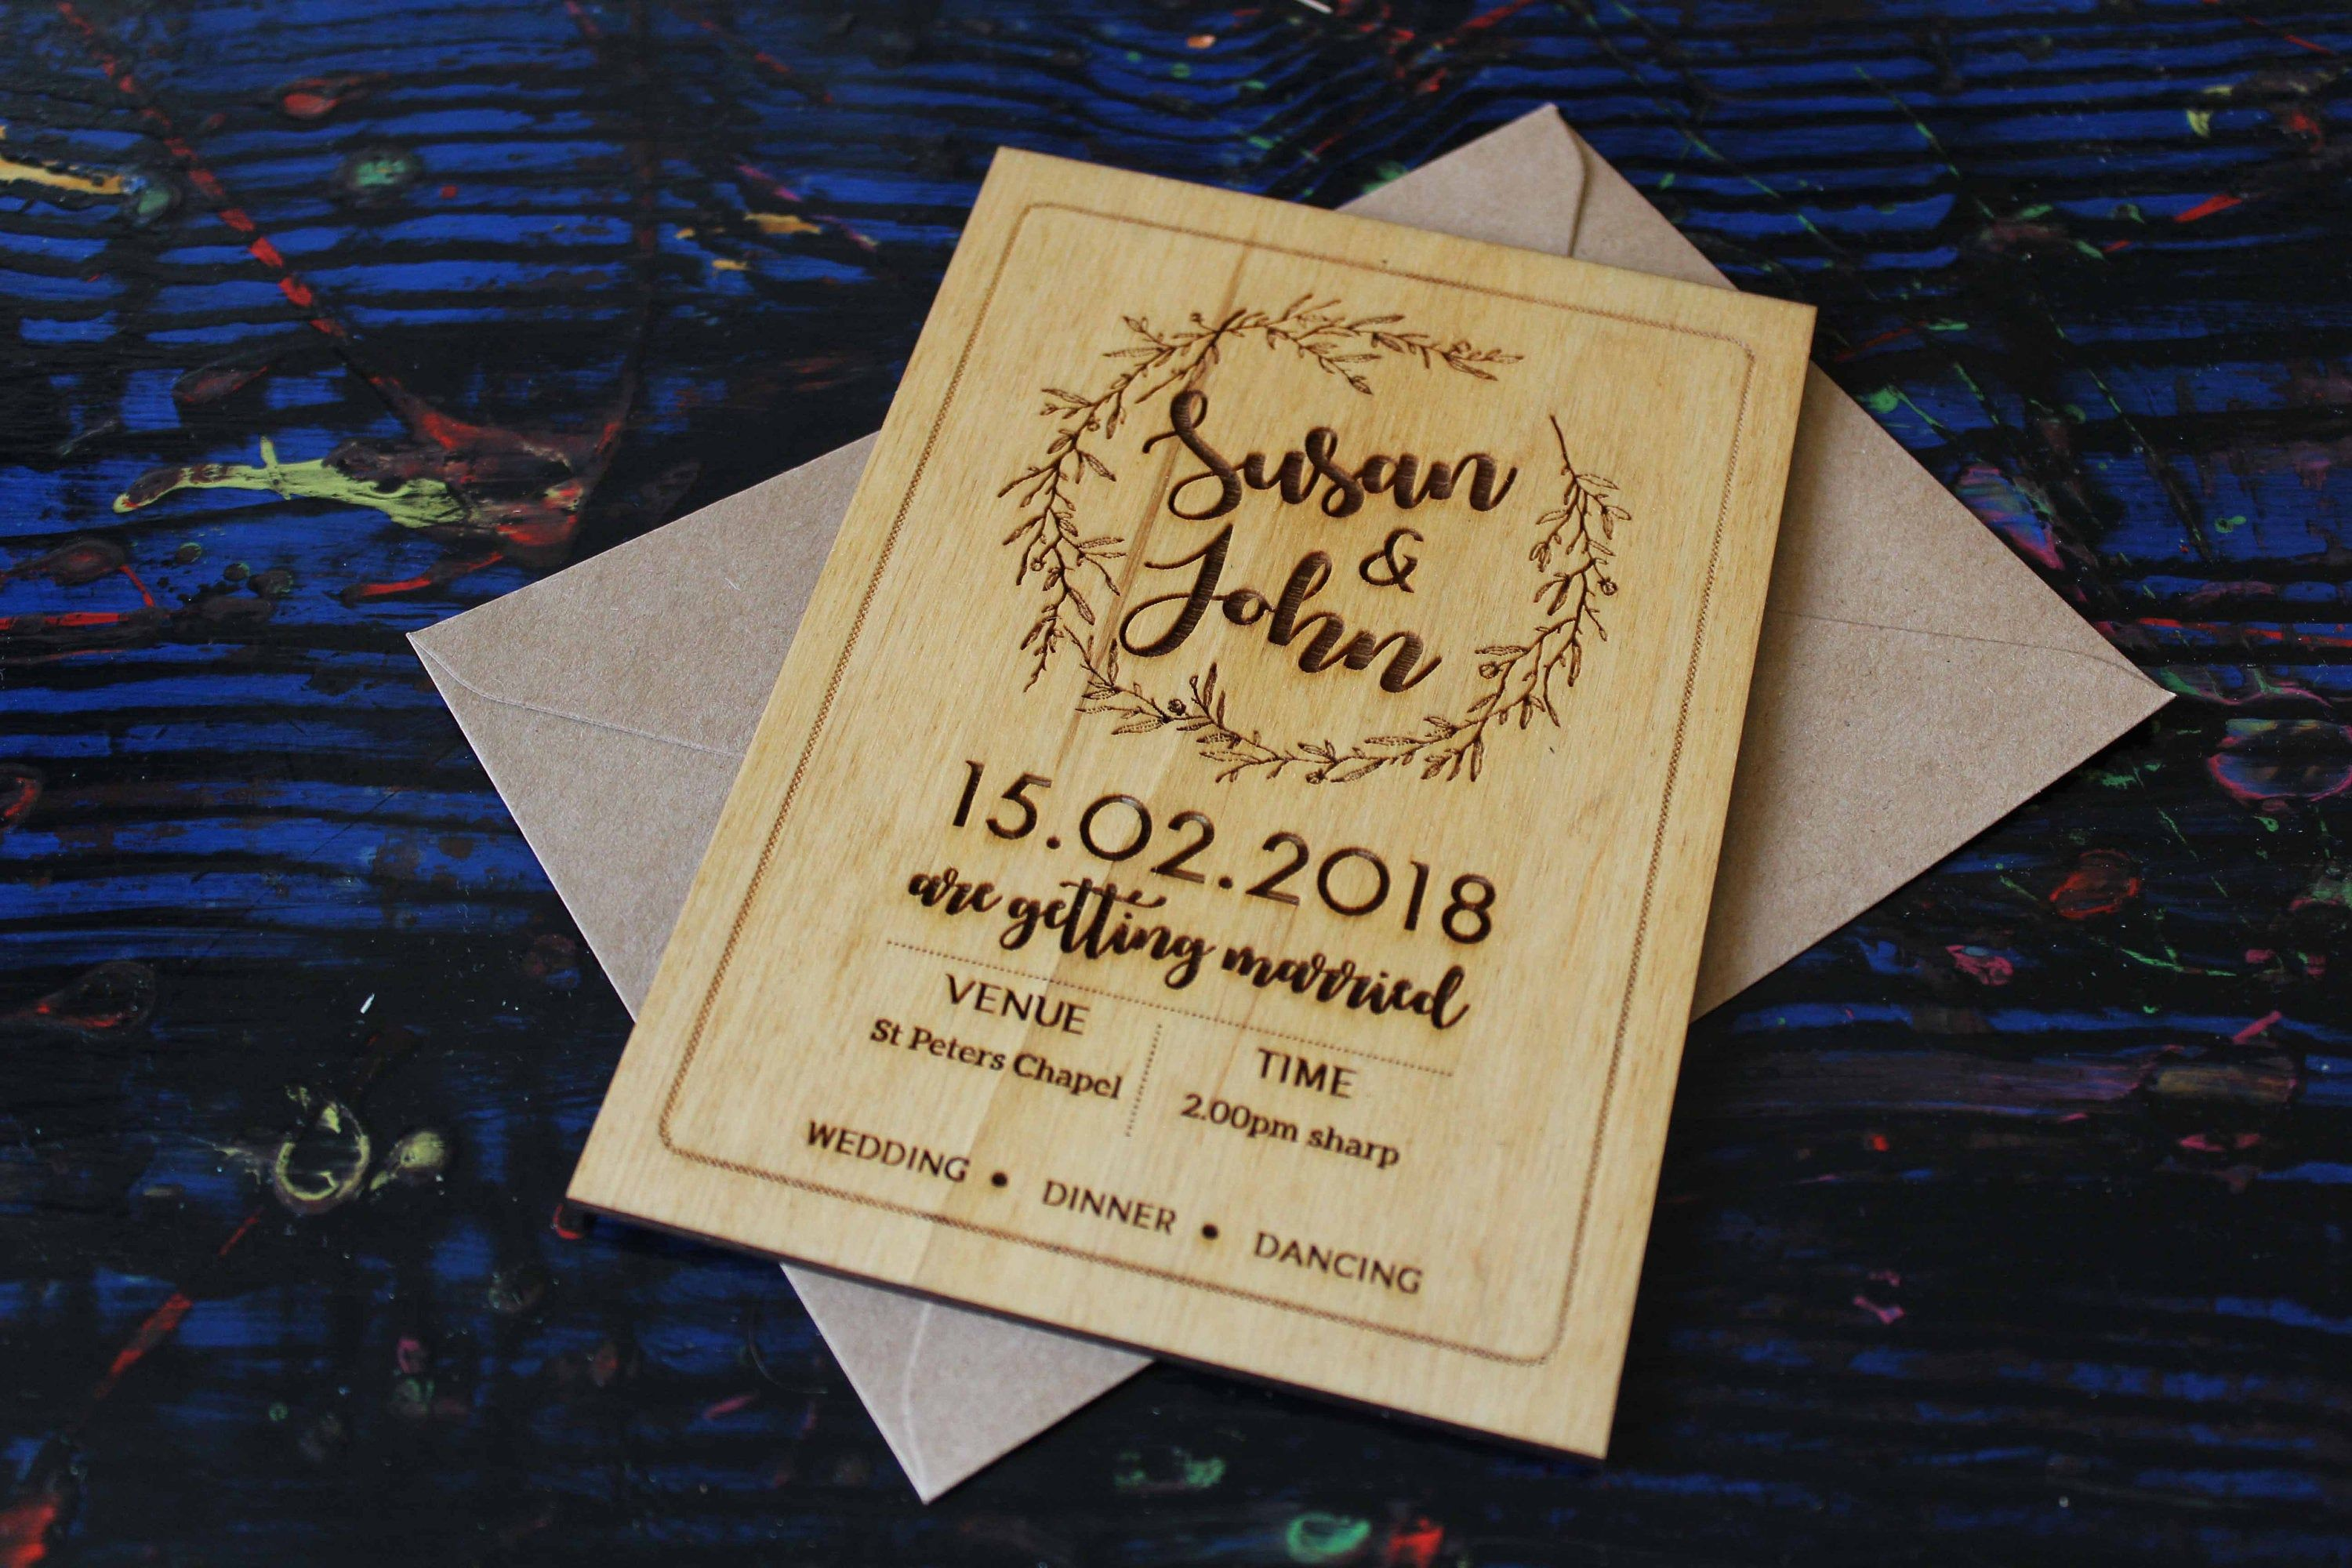 Sweethearts Wood Engraved Wedding Invitations Invites Pack of 10